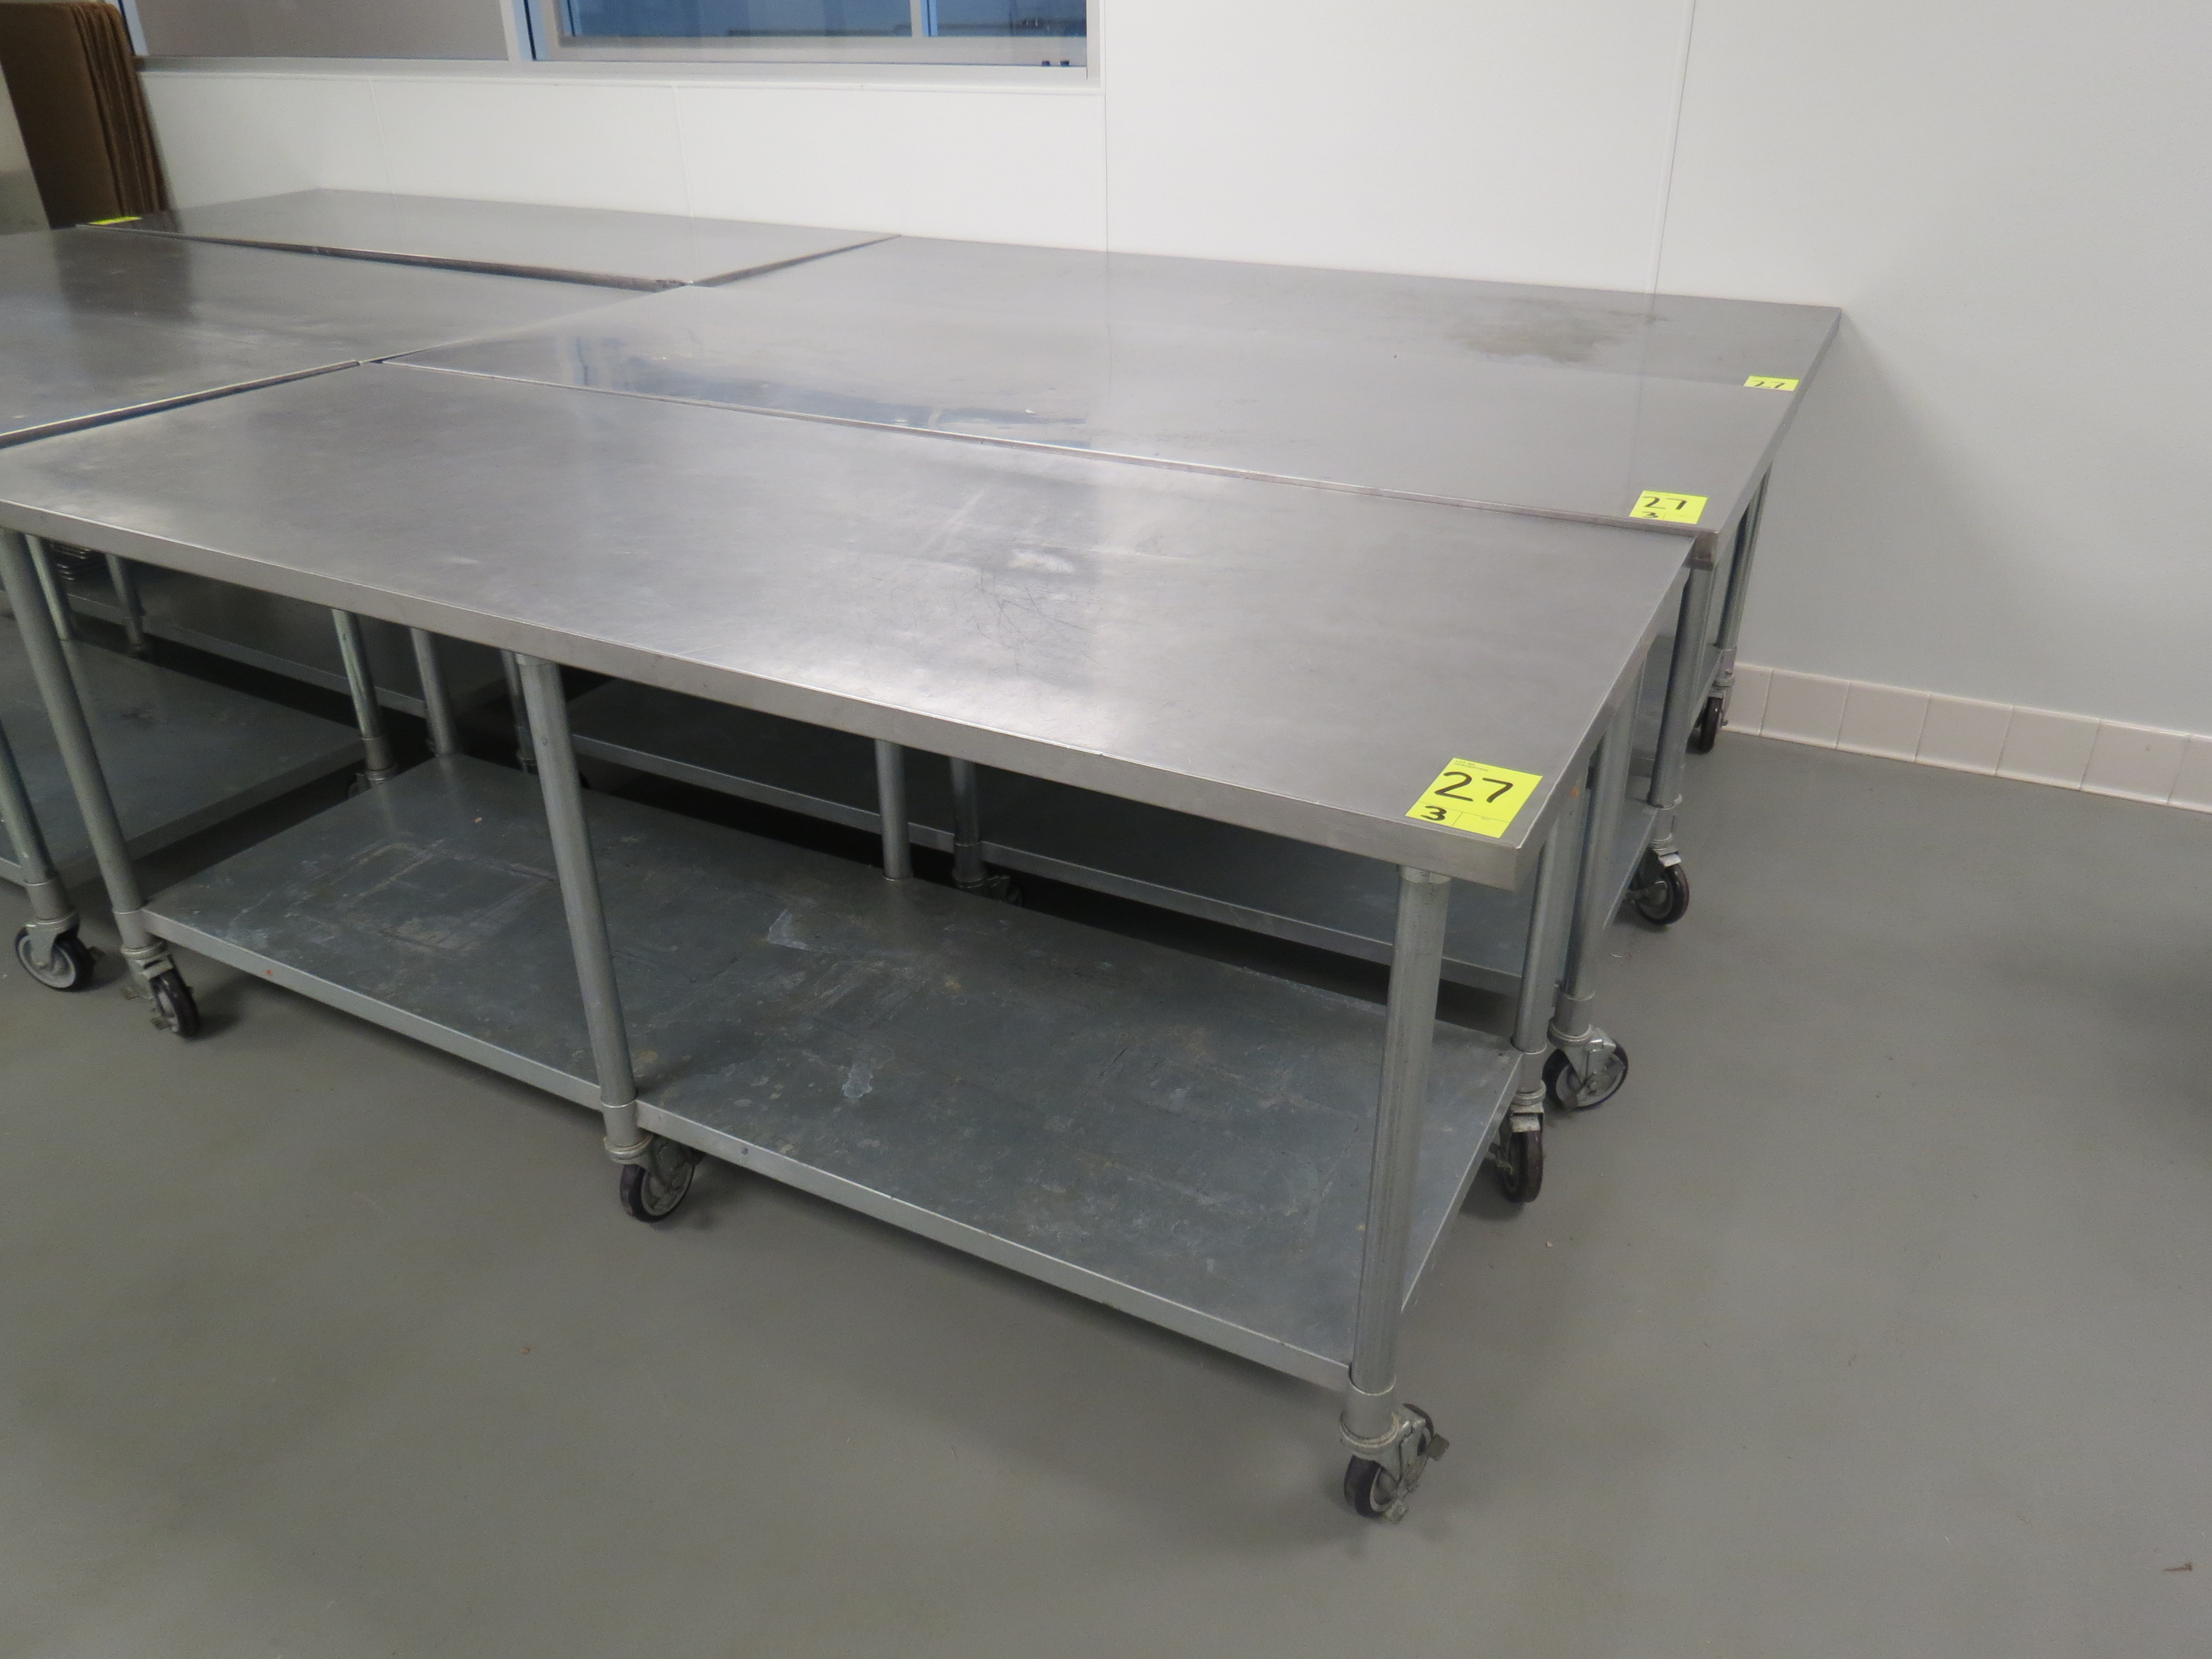 """Lot 27 - STAINLESS STEEL MOBILE PREP TABLES, 30"""" x 84"""""""